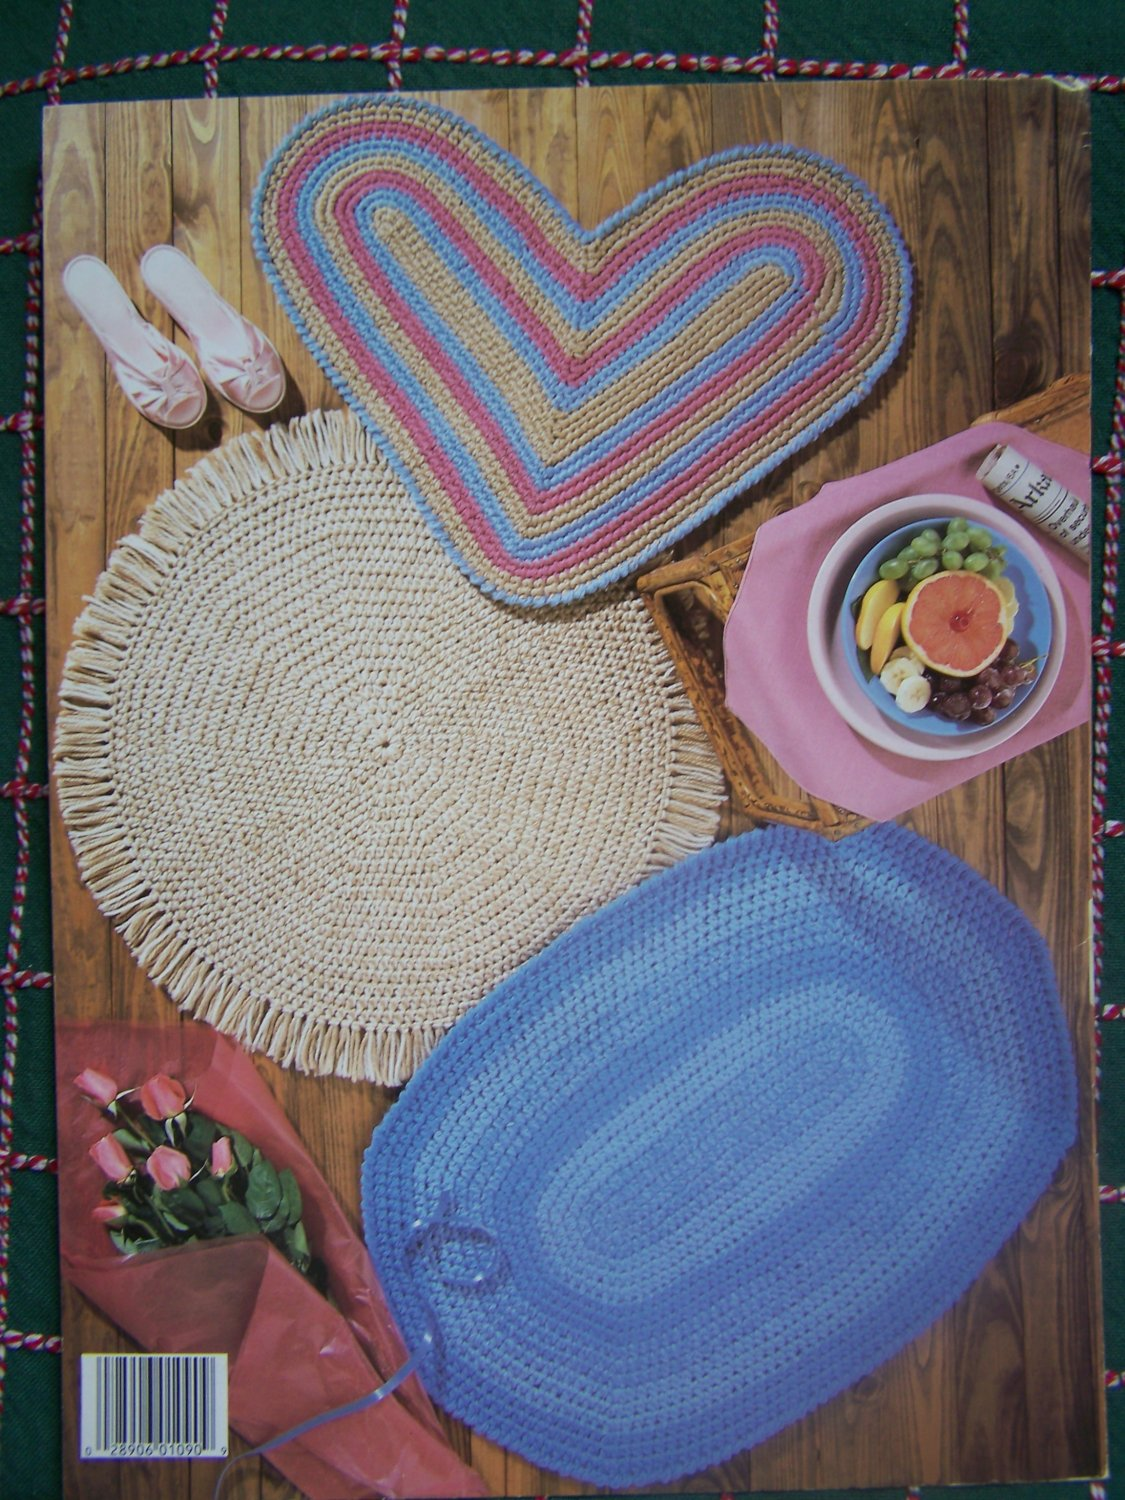 Vintage 1980s Quick Crochet Throw Rugs 5 Patterns Oval